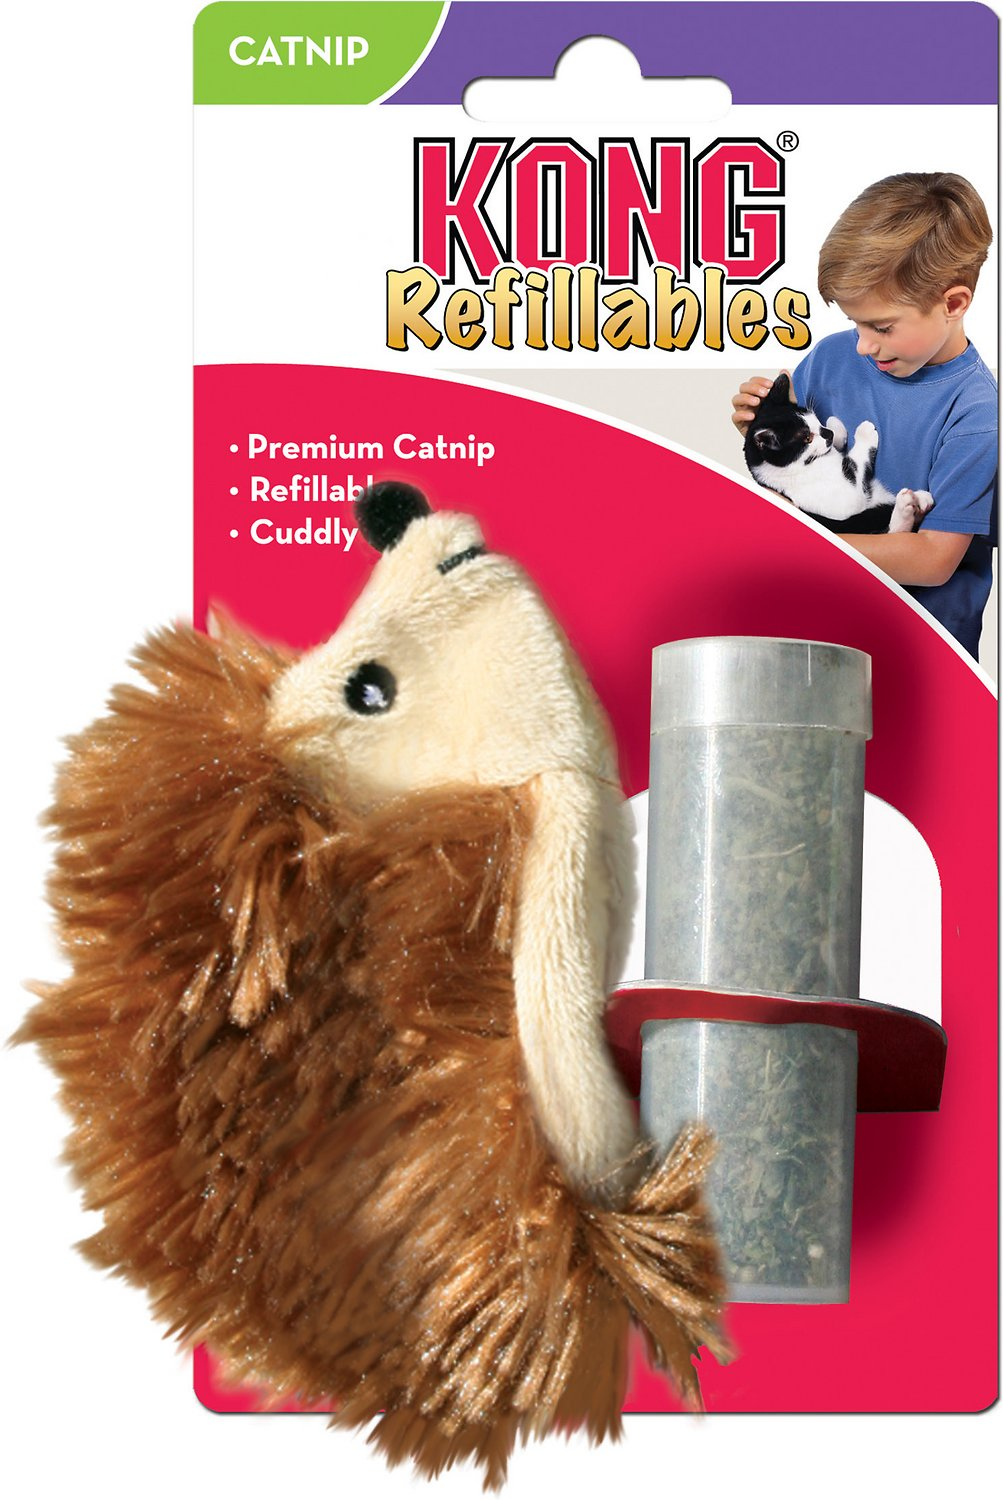 KONG Refillable Hedgehog Catnip Cat Toy